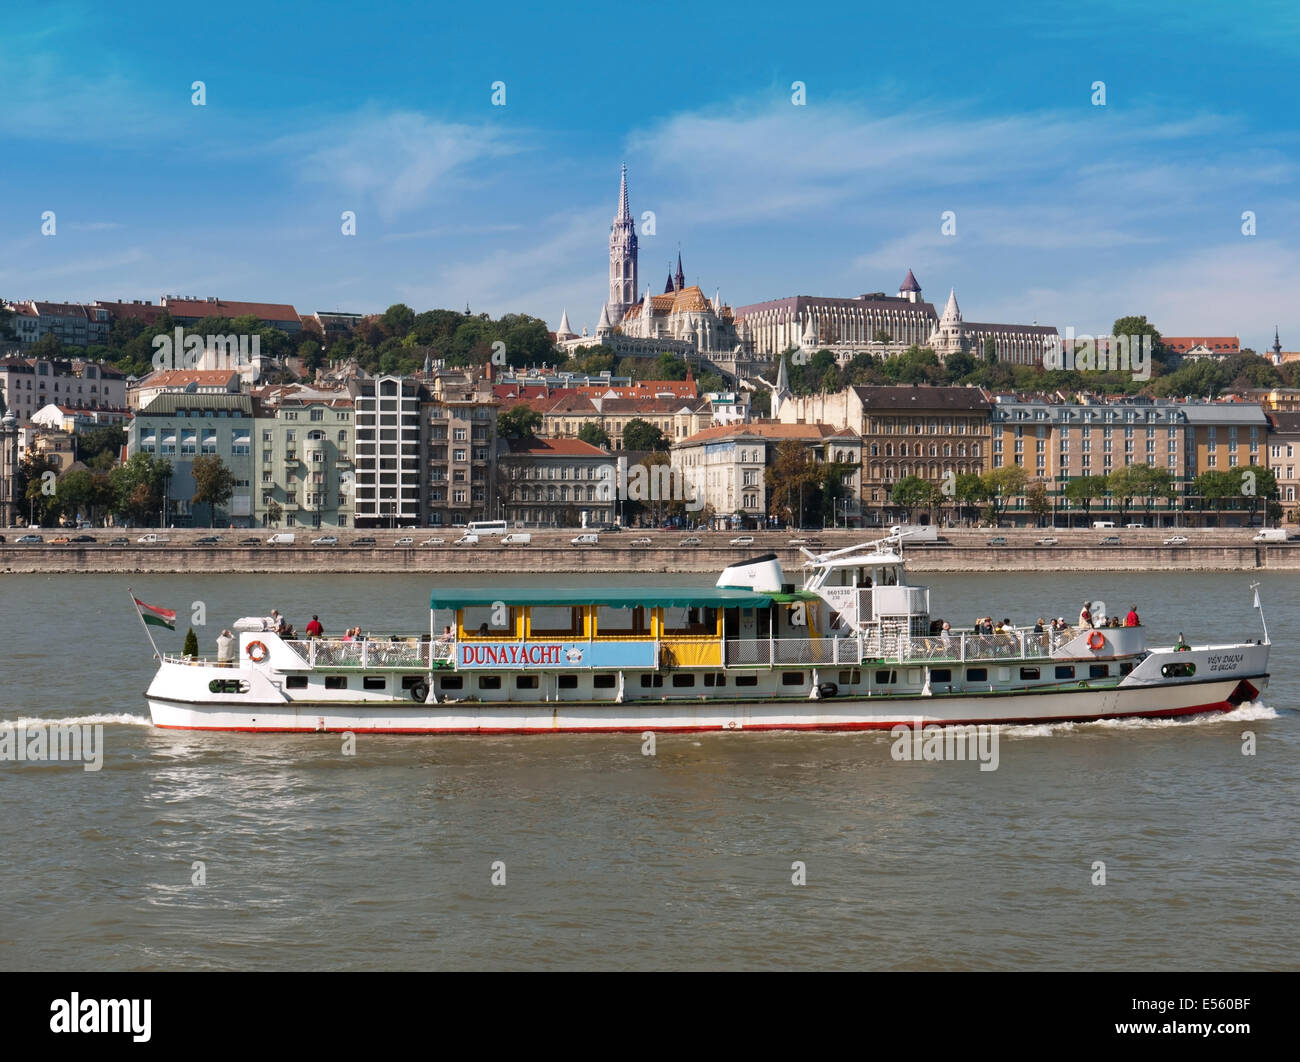 Boat on the Danube river, Budapest, Hungary Stock Photo